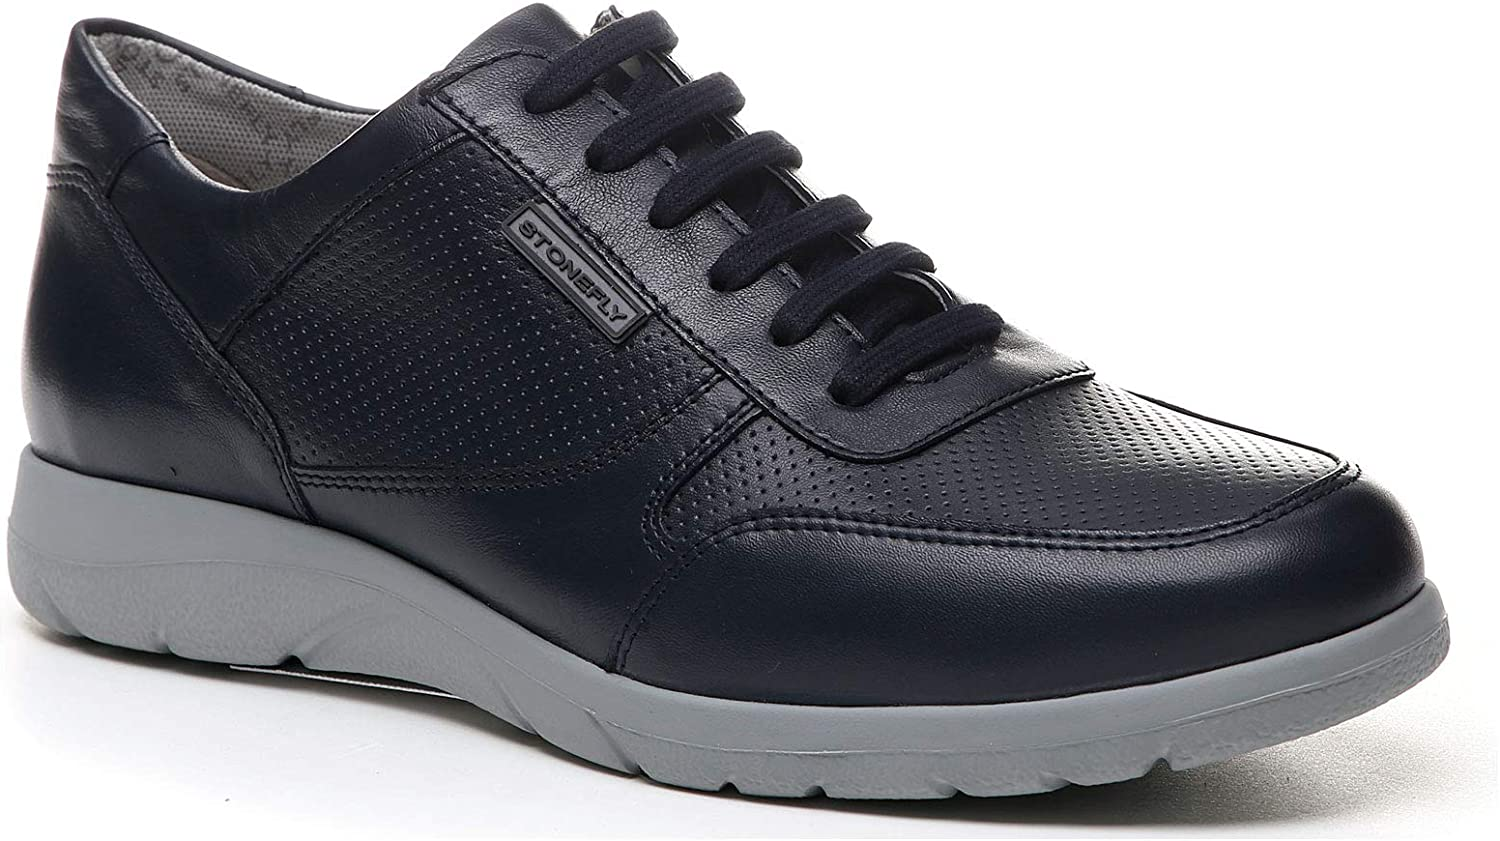 Stonefly Casual shoes for Men, Colour Black, Brand, Model Casual shoes for Men Space Man 3 Black